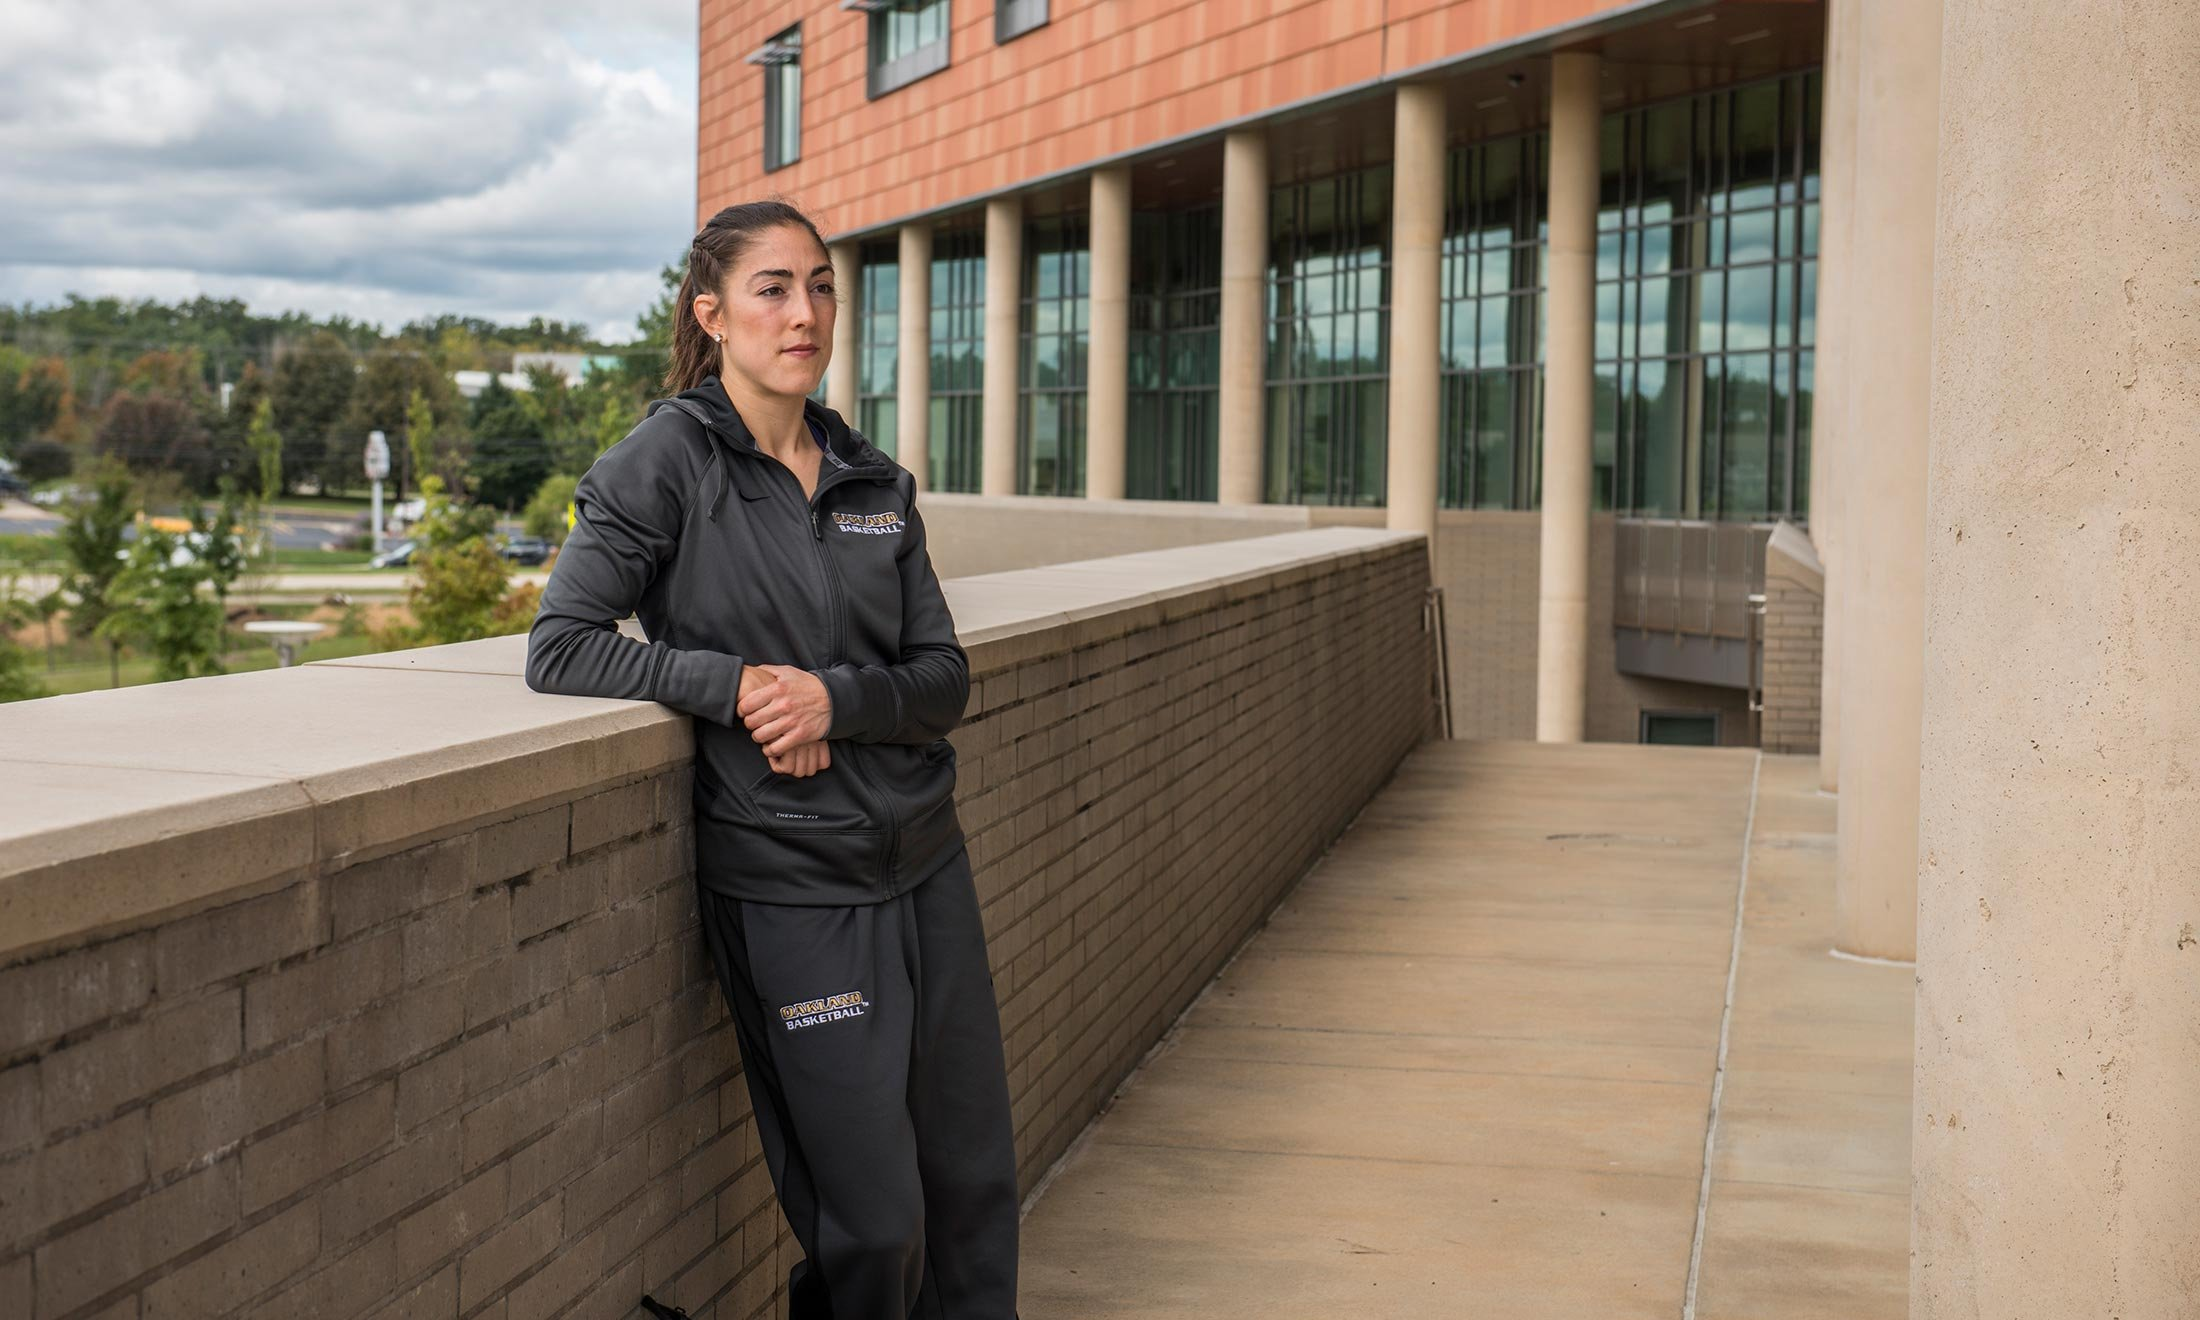 Oakland University women's basketball player Taylor Gleason stands in front of the Human Health building